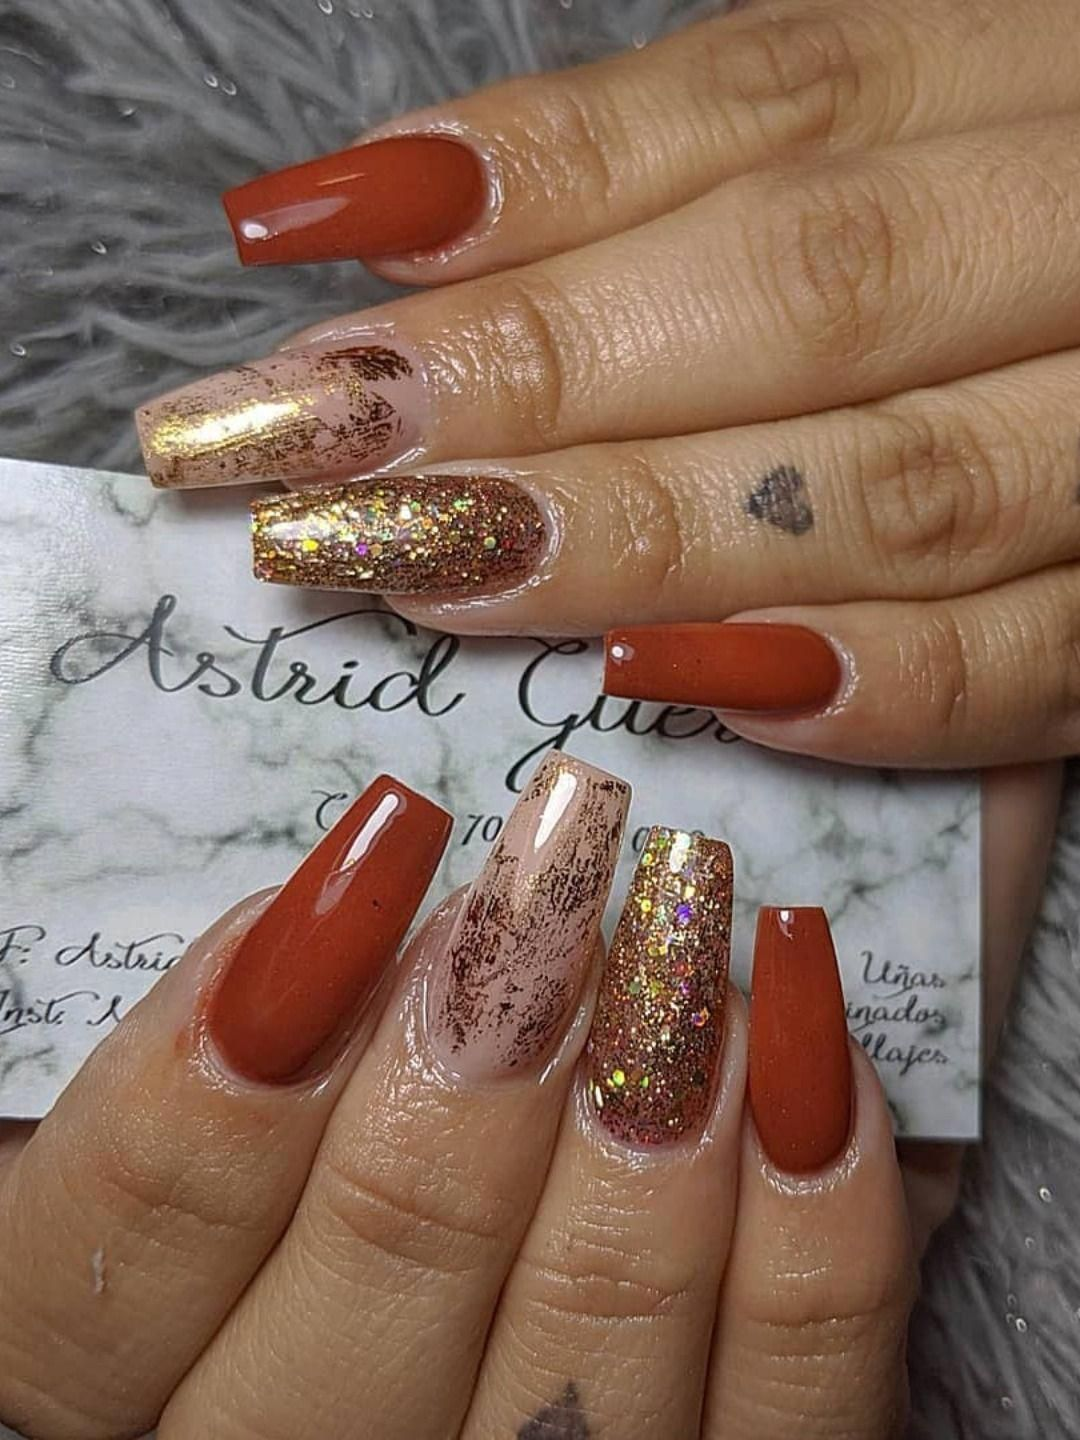 Cute Burnt Orange Coffin Nails With Gold Foil Gold Glitter Nails For Fall 2019 Inspiration Fallnails Fallnailart In 2020 Matte Green Nails Gold Nails Orange Nails